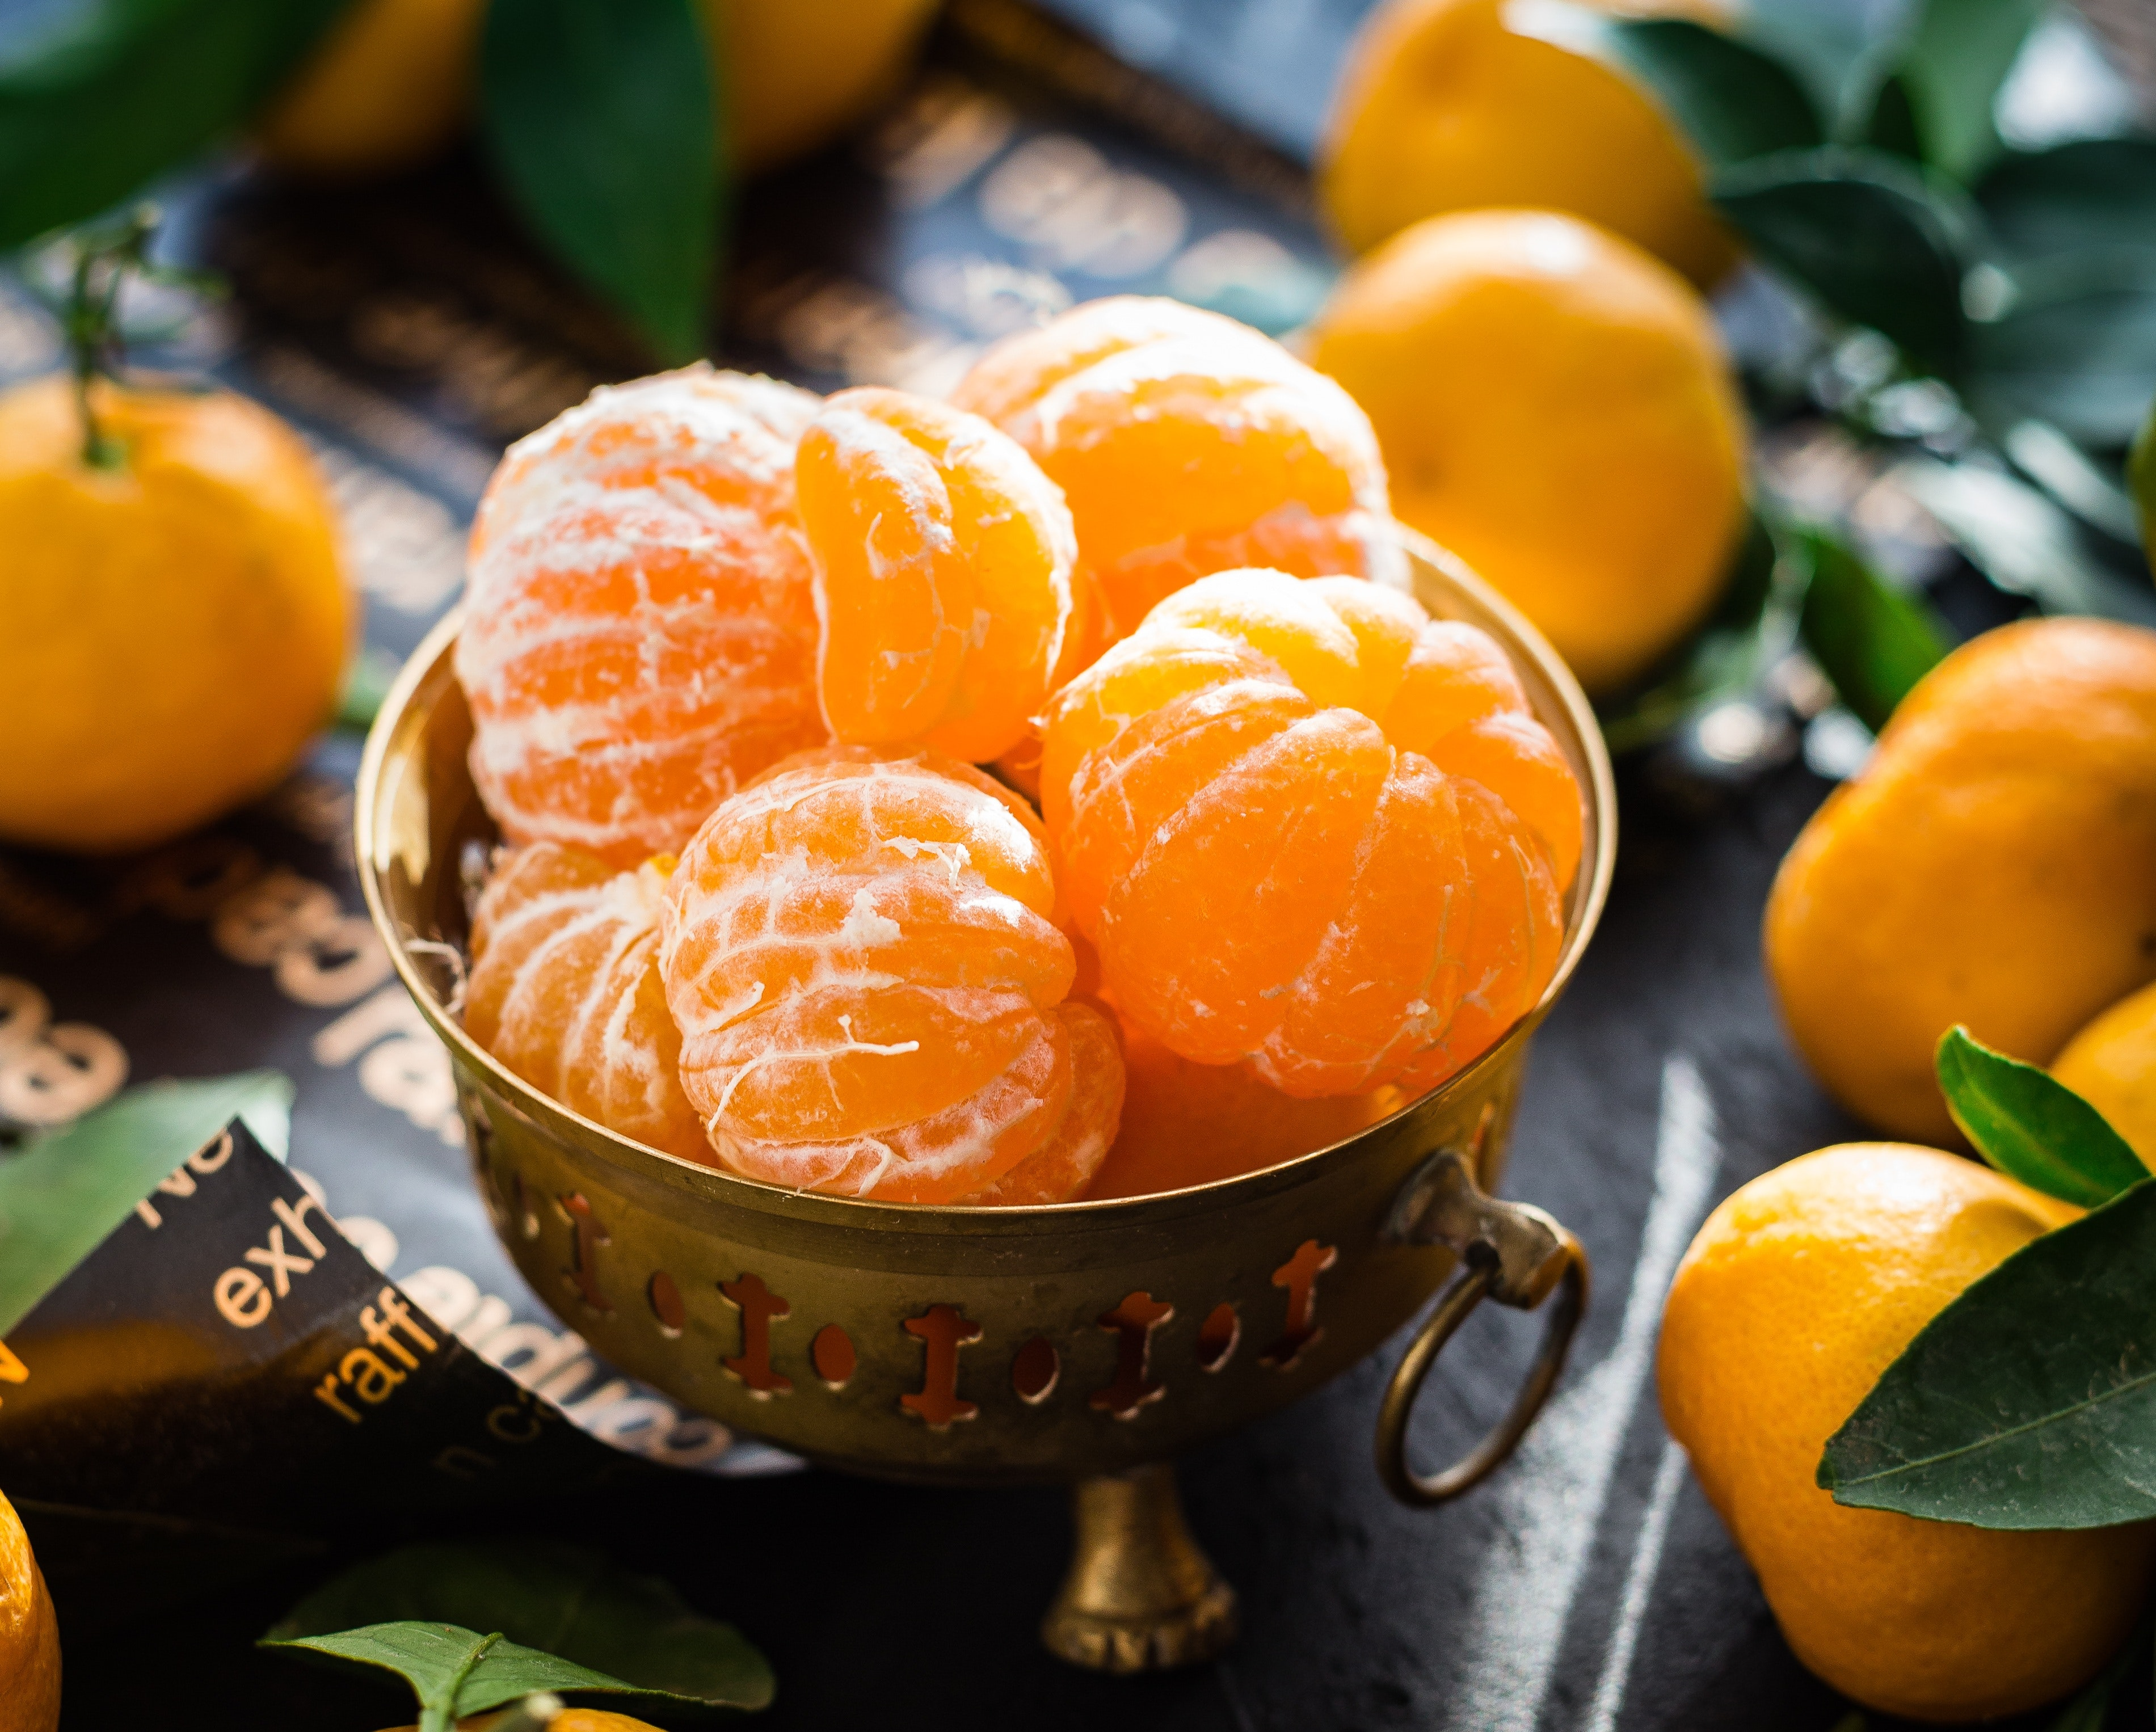 Orange to increase haemoglobin